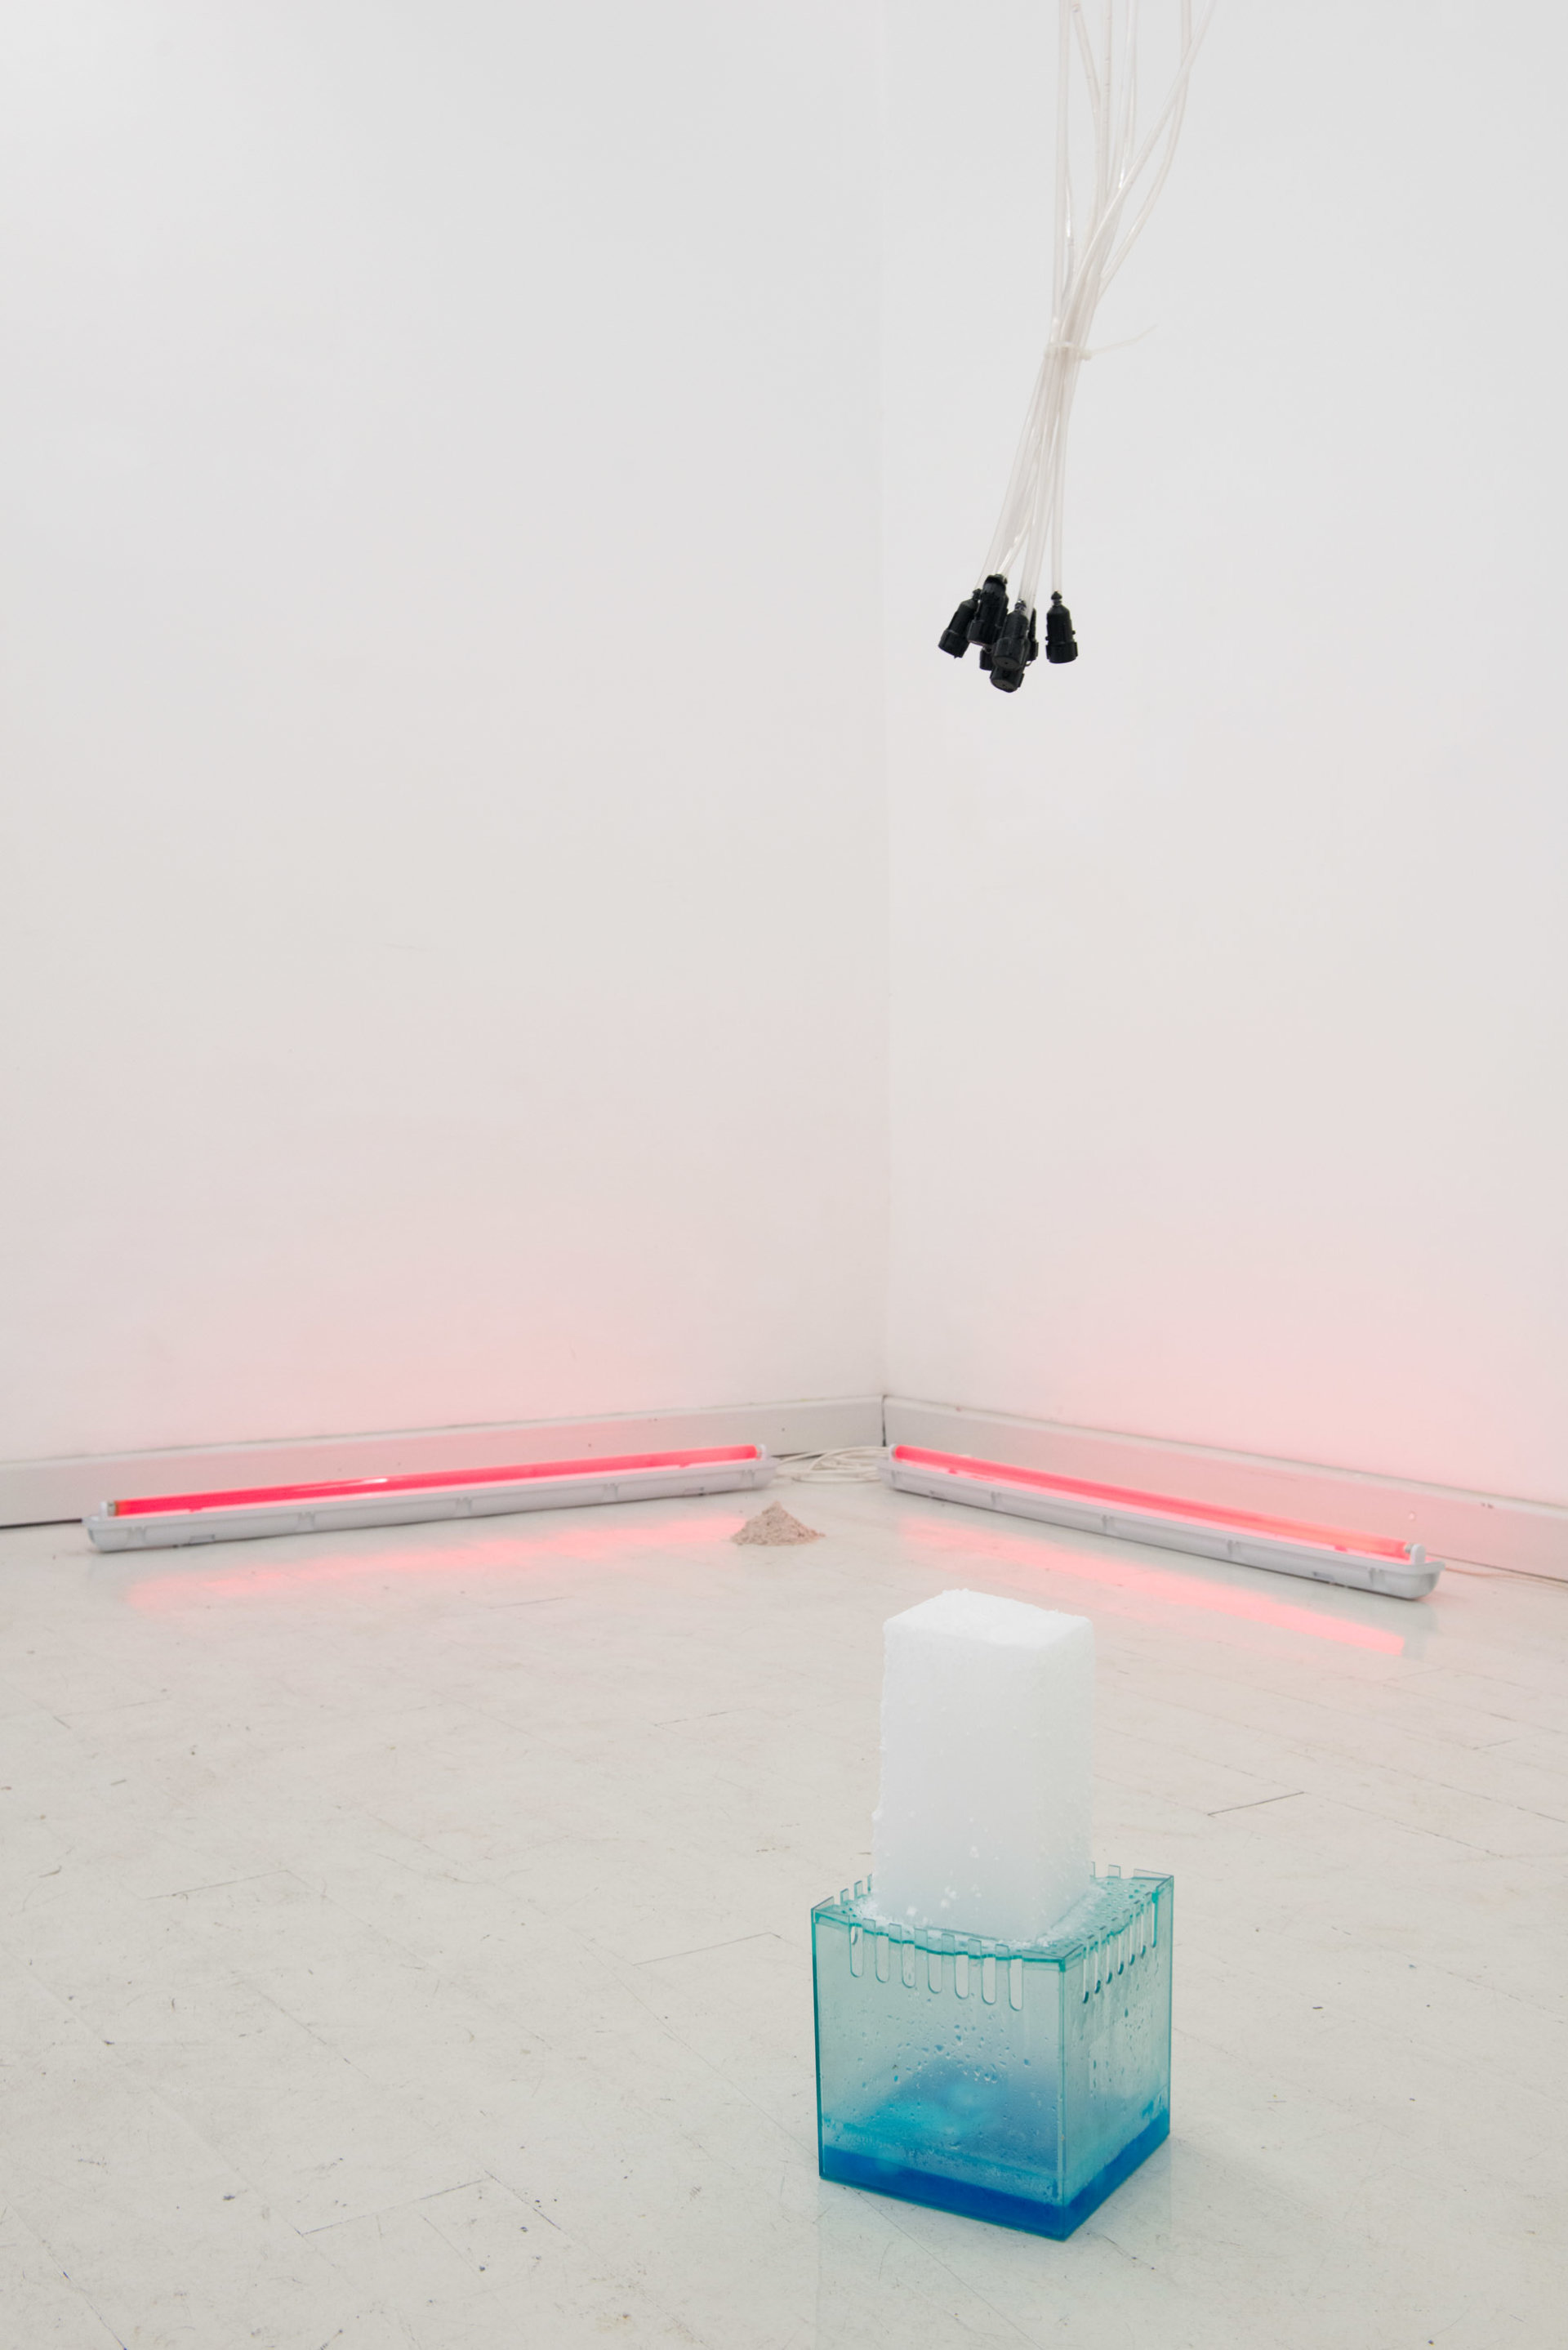 U+29DC: Index of/ Enrico Boccioletti Daisyworld, 2015